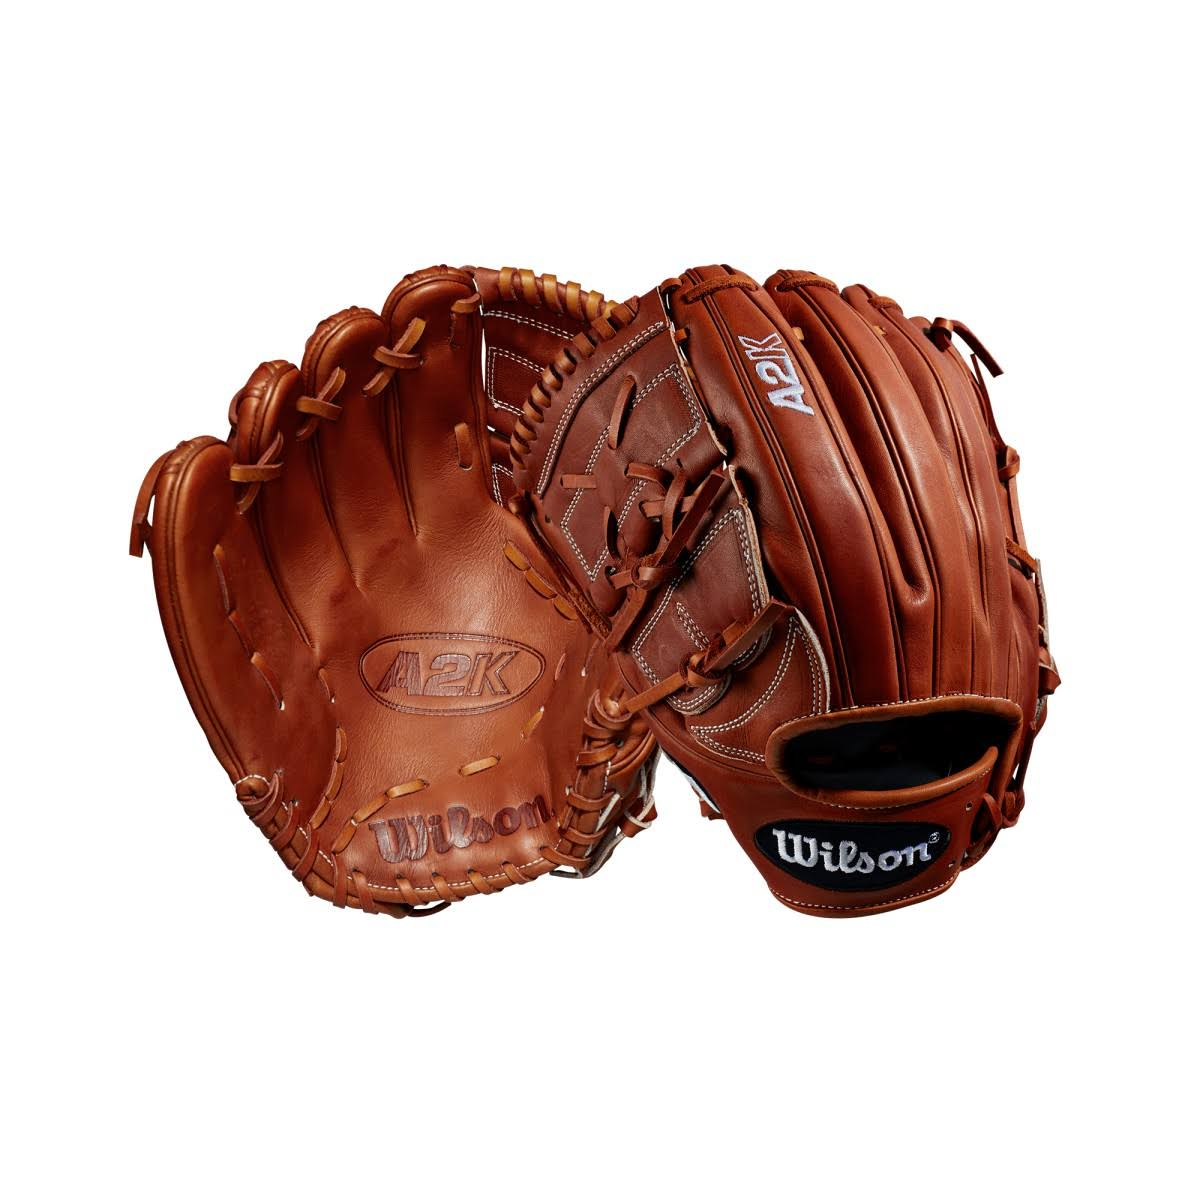 Wilson 2018 A2k Series B212 Baseball Glove - Large, 12""